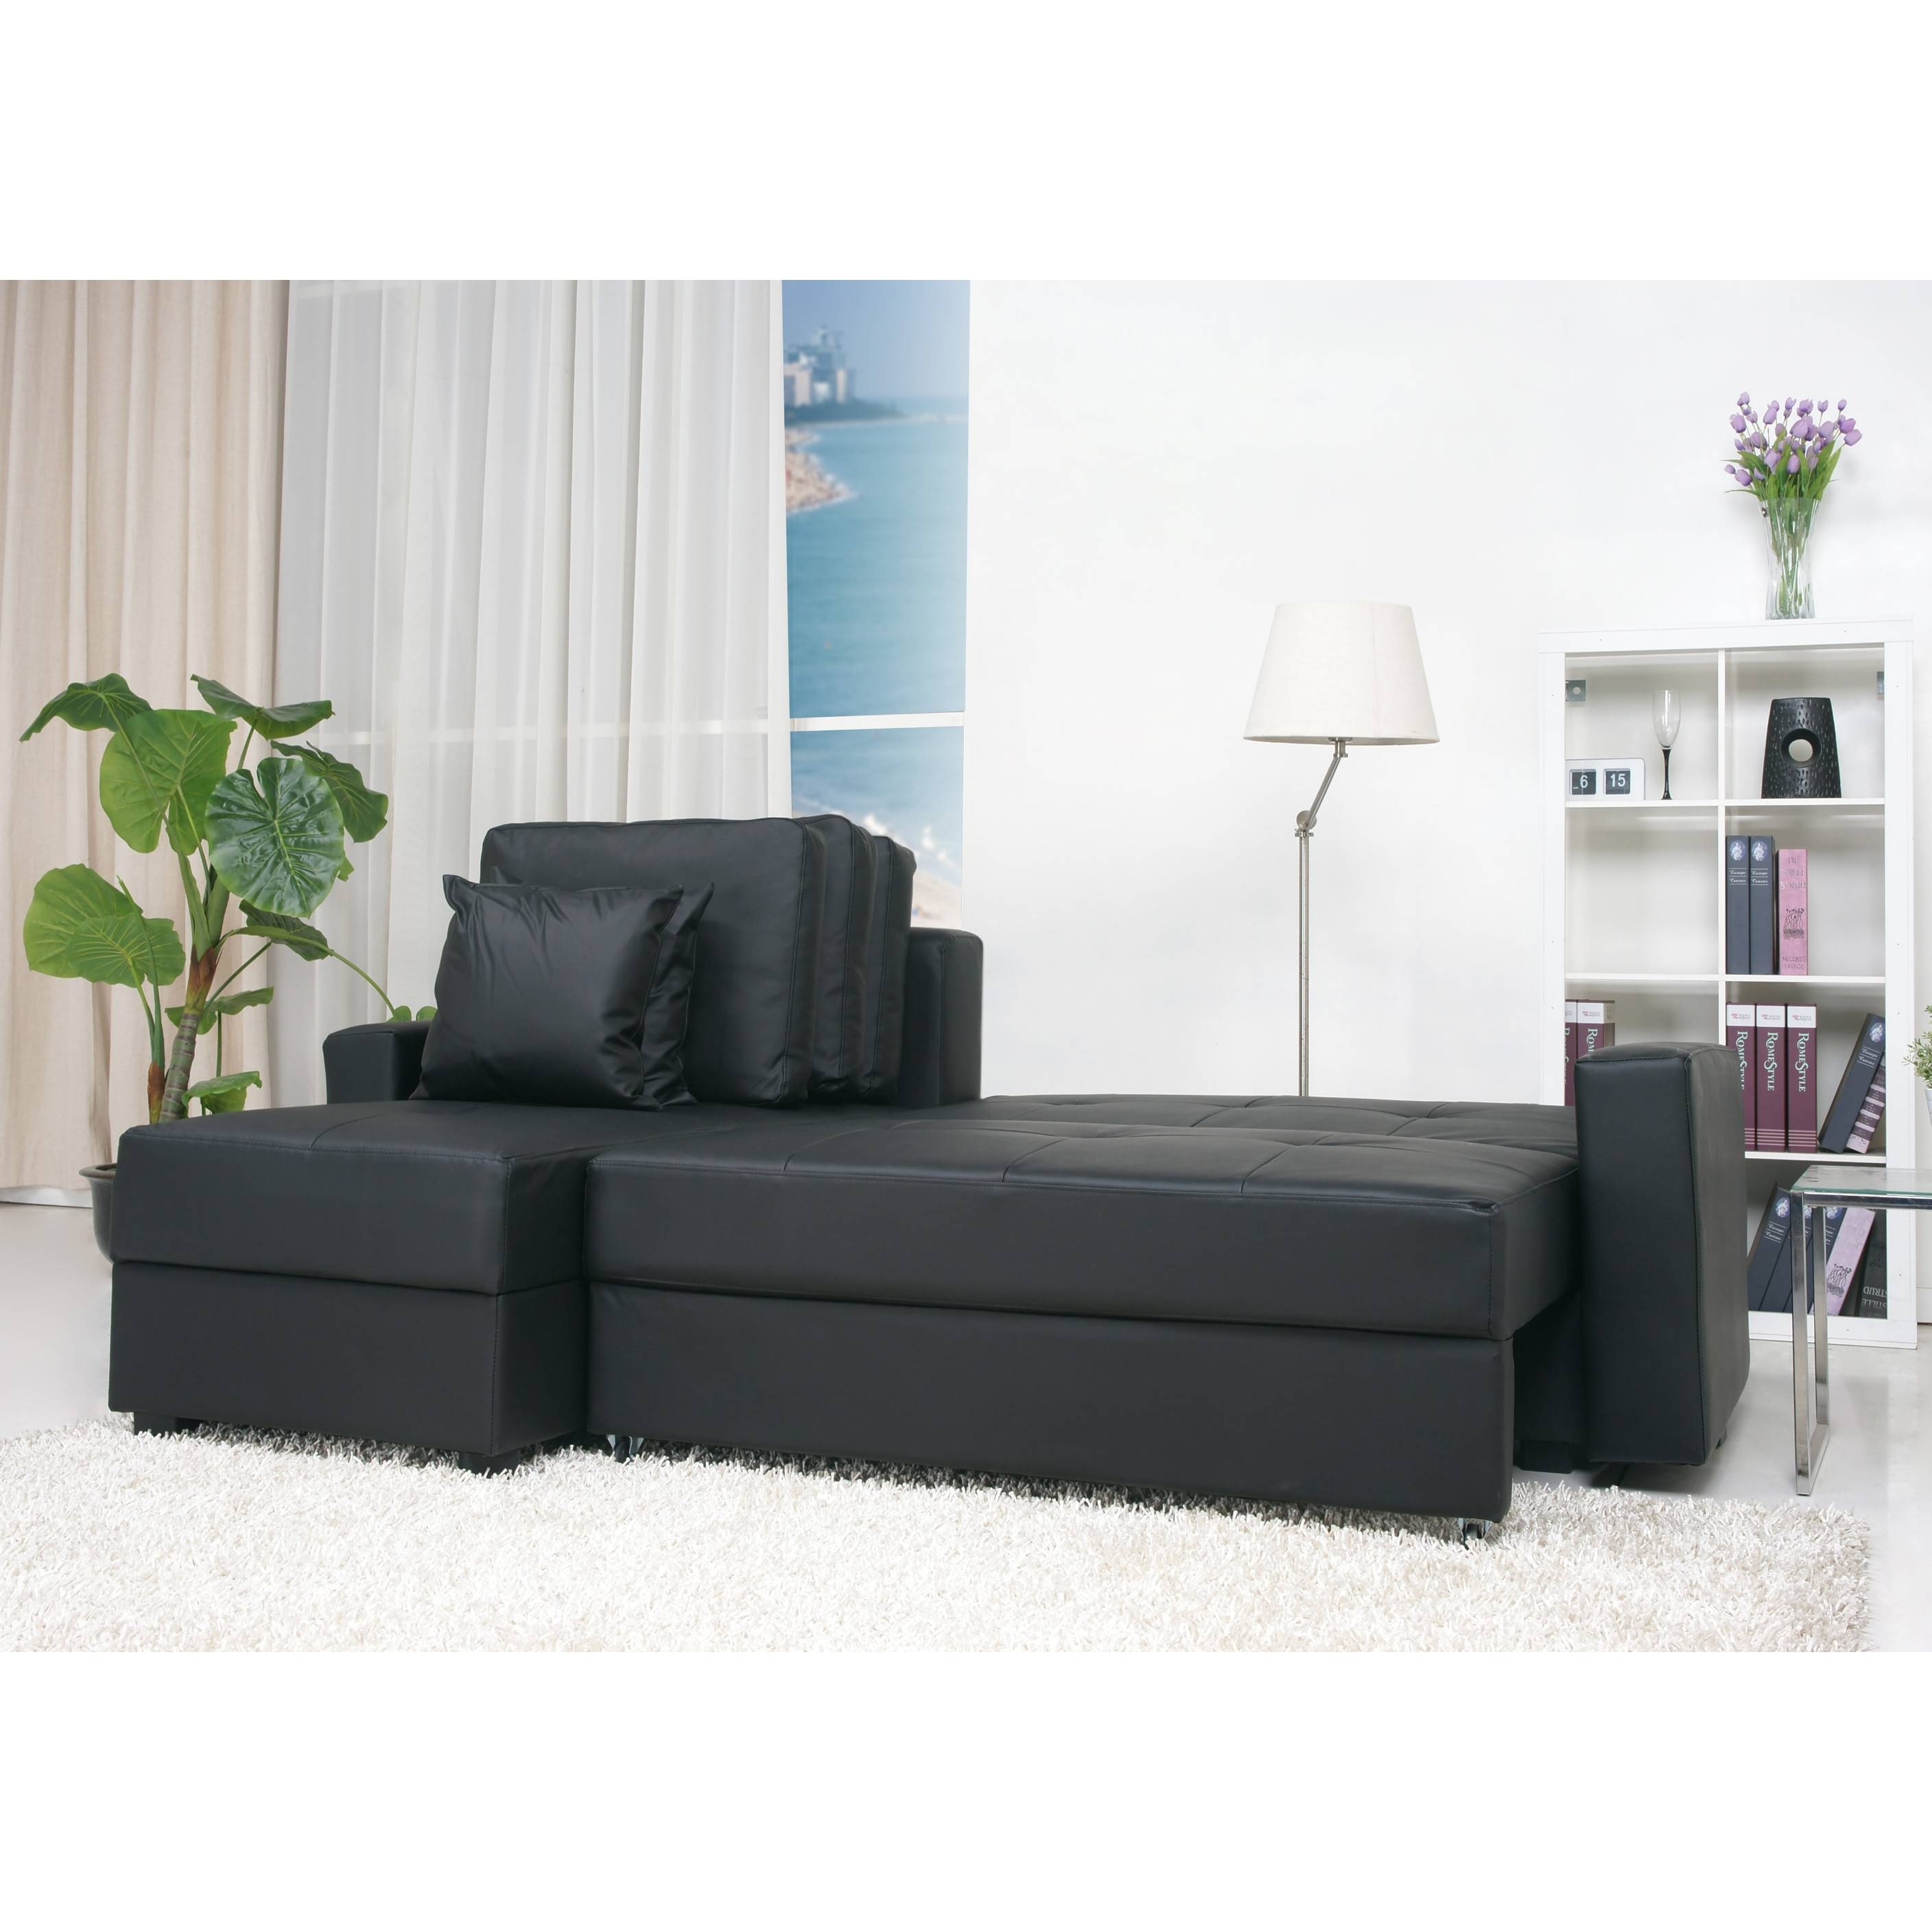 Www.bunscoilaniuir/s/2016/12/small-Spaces-Conf in Compact Sectional Sofas (Image 15 of 30)